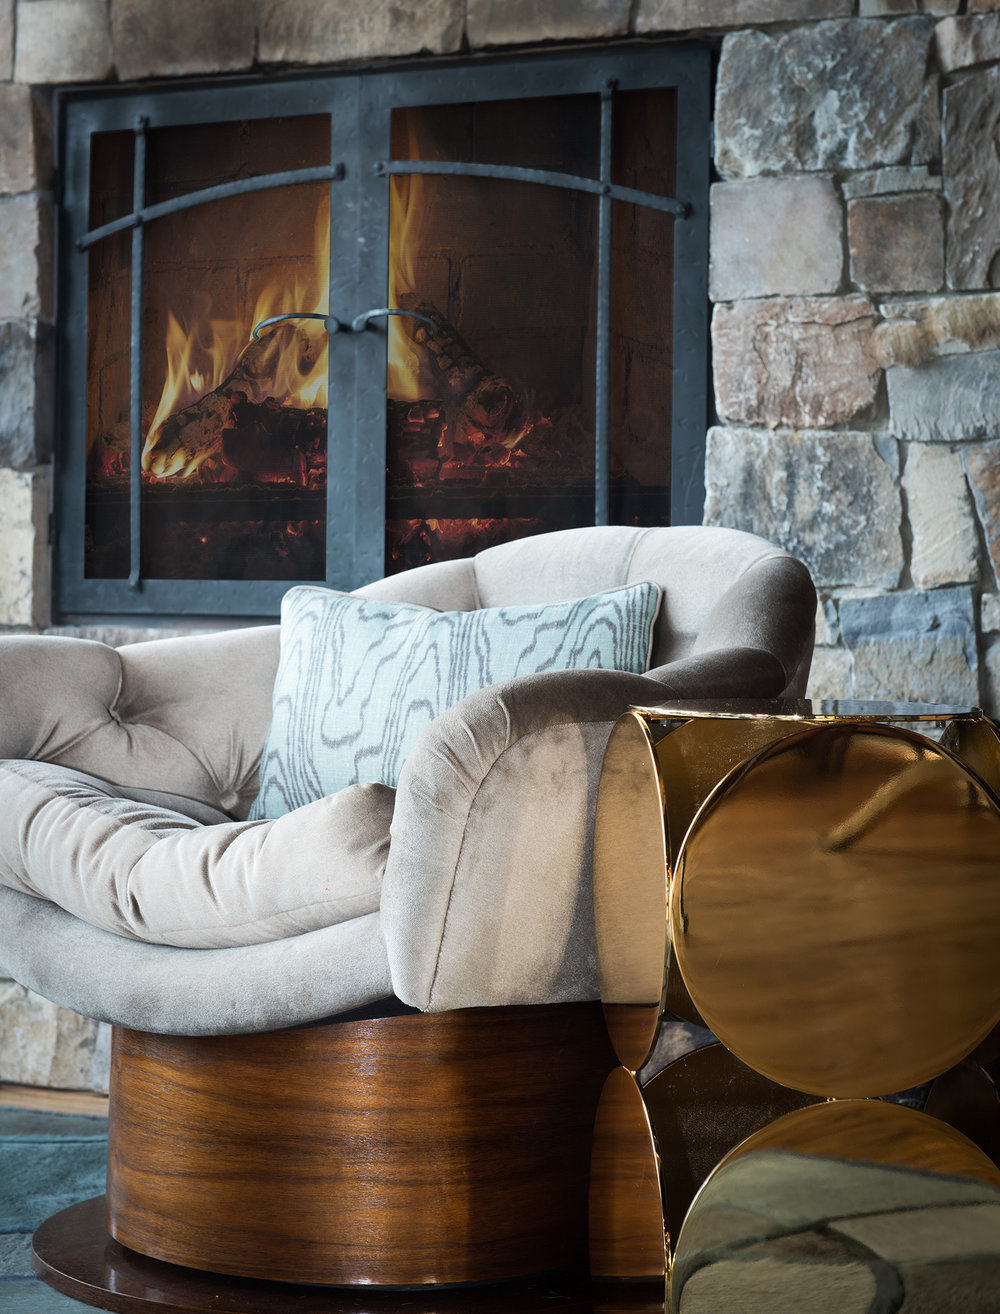 I can envision sitting by the fire drinking in this cozy lounger drinking a hot toddy!